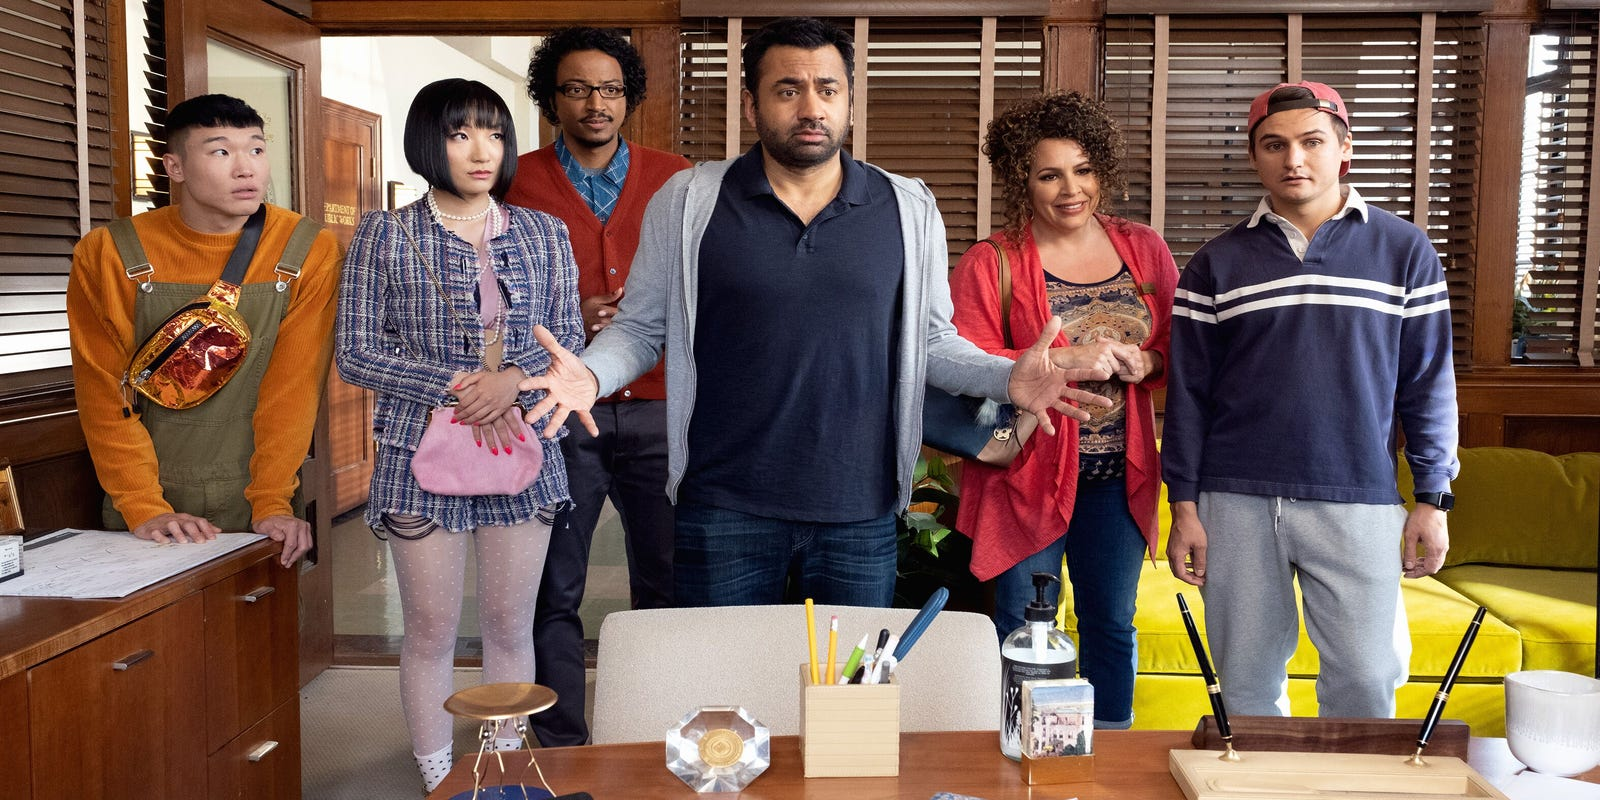 Sunnyside': NBC comedy is first canceled show, but will move online